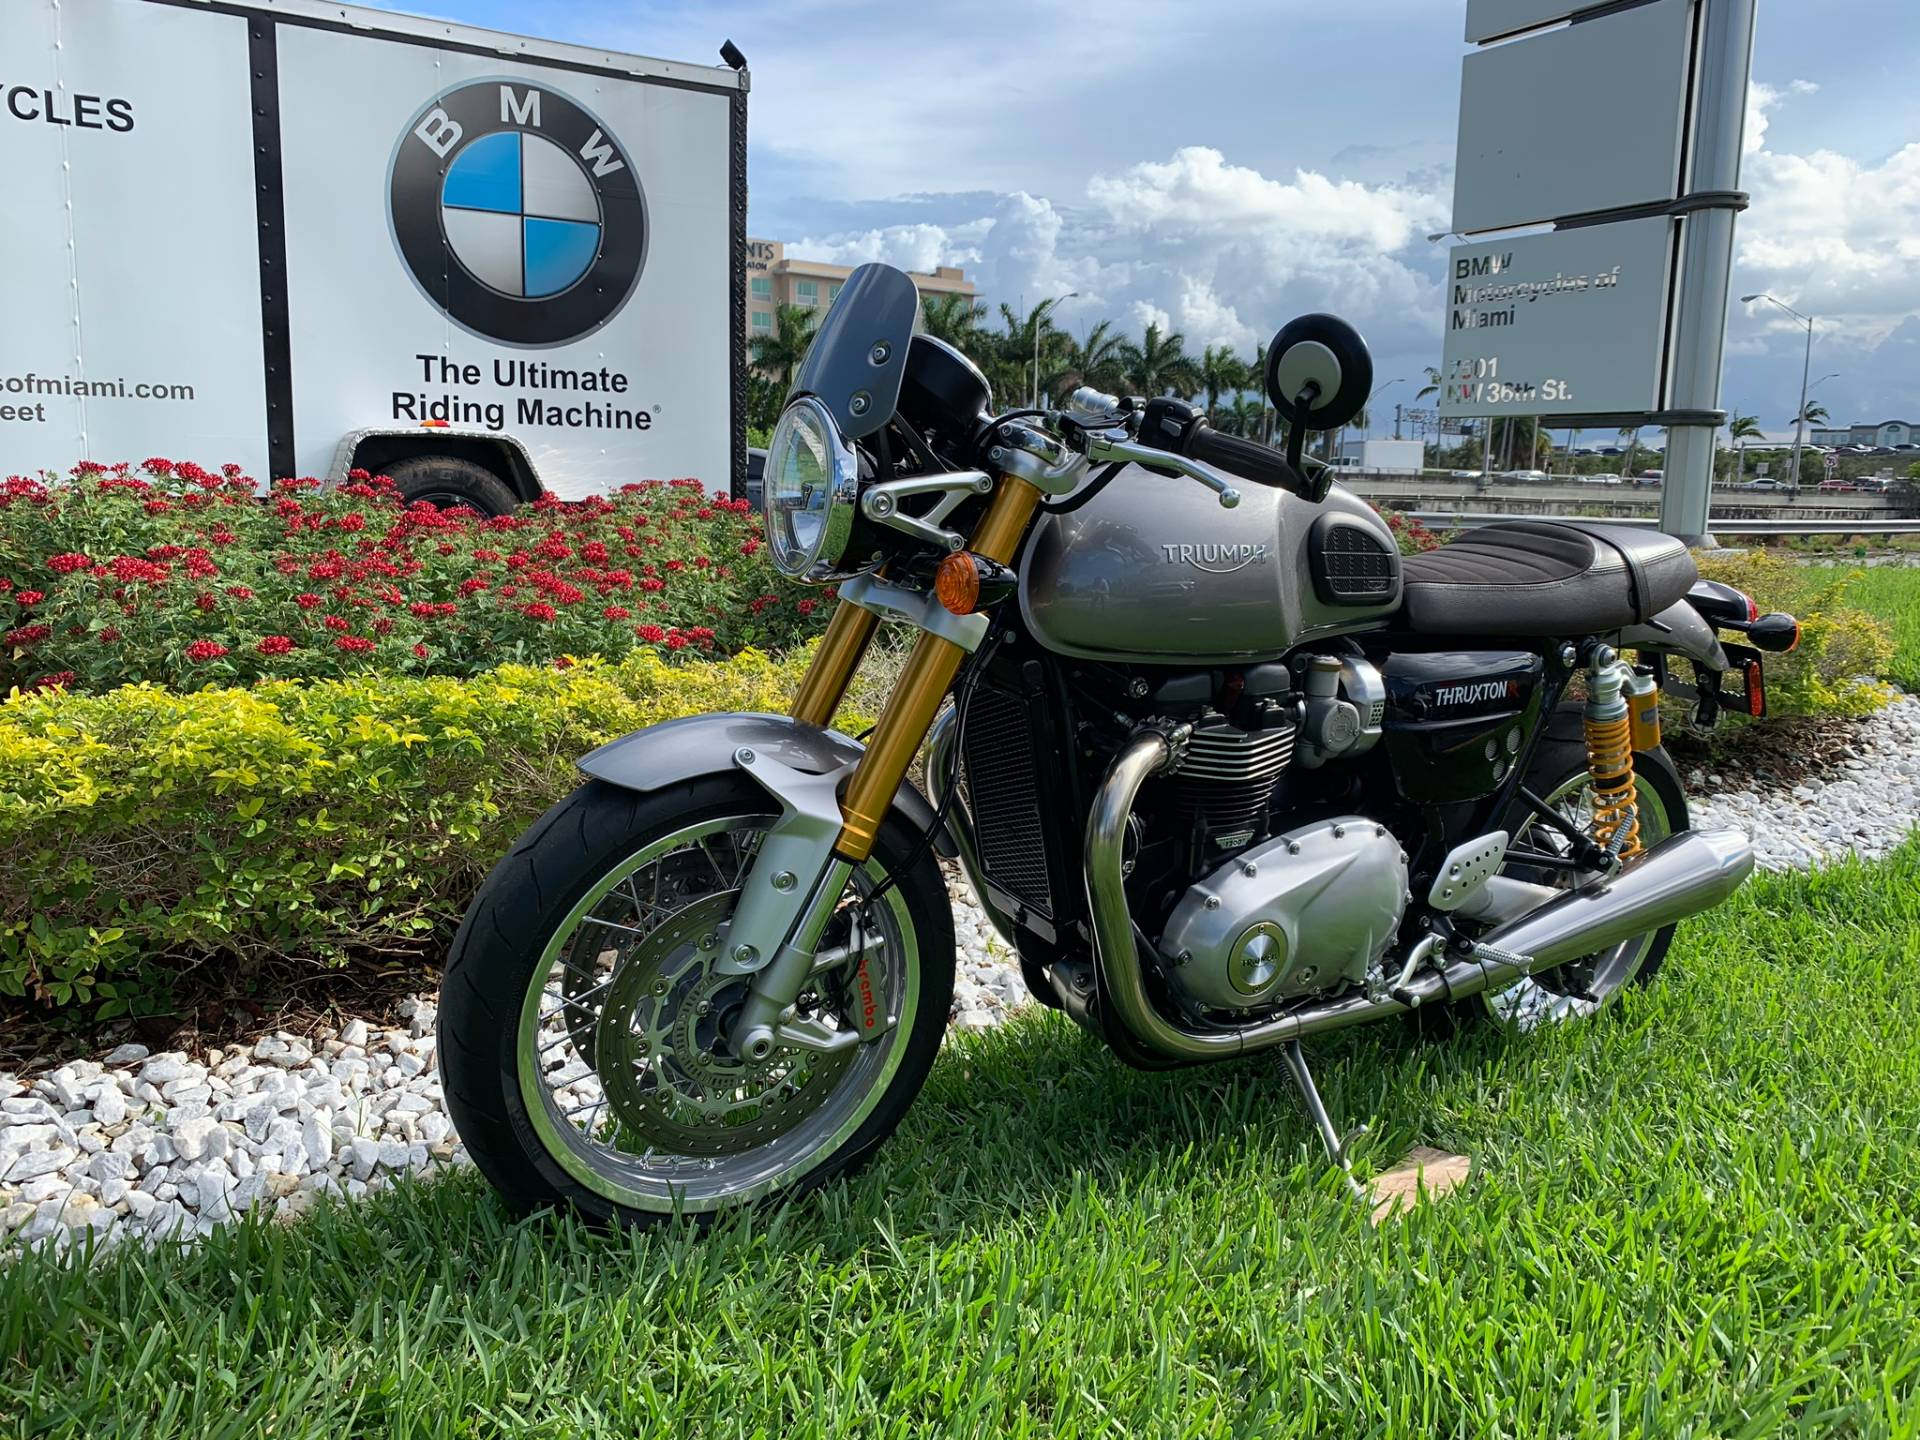 Used 2016 Triumph Thruxton 1200 R for sale,  2016 Triumph Thruxton 1200R for sale,  Triumph Thruxton1200R,  Used ThruxtonR, Cafe. Cruiser, BMW Motorcycles of Miami, Motorcycles of Miami, Motorcycles Miami, New Motorcycles, Used Motorcycles, pre-owned. #BMWMotorcyclesOfMiami #MotorcyclesOfMiami #Moto - Photo 5